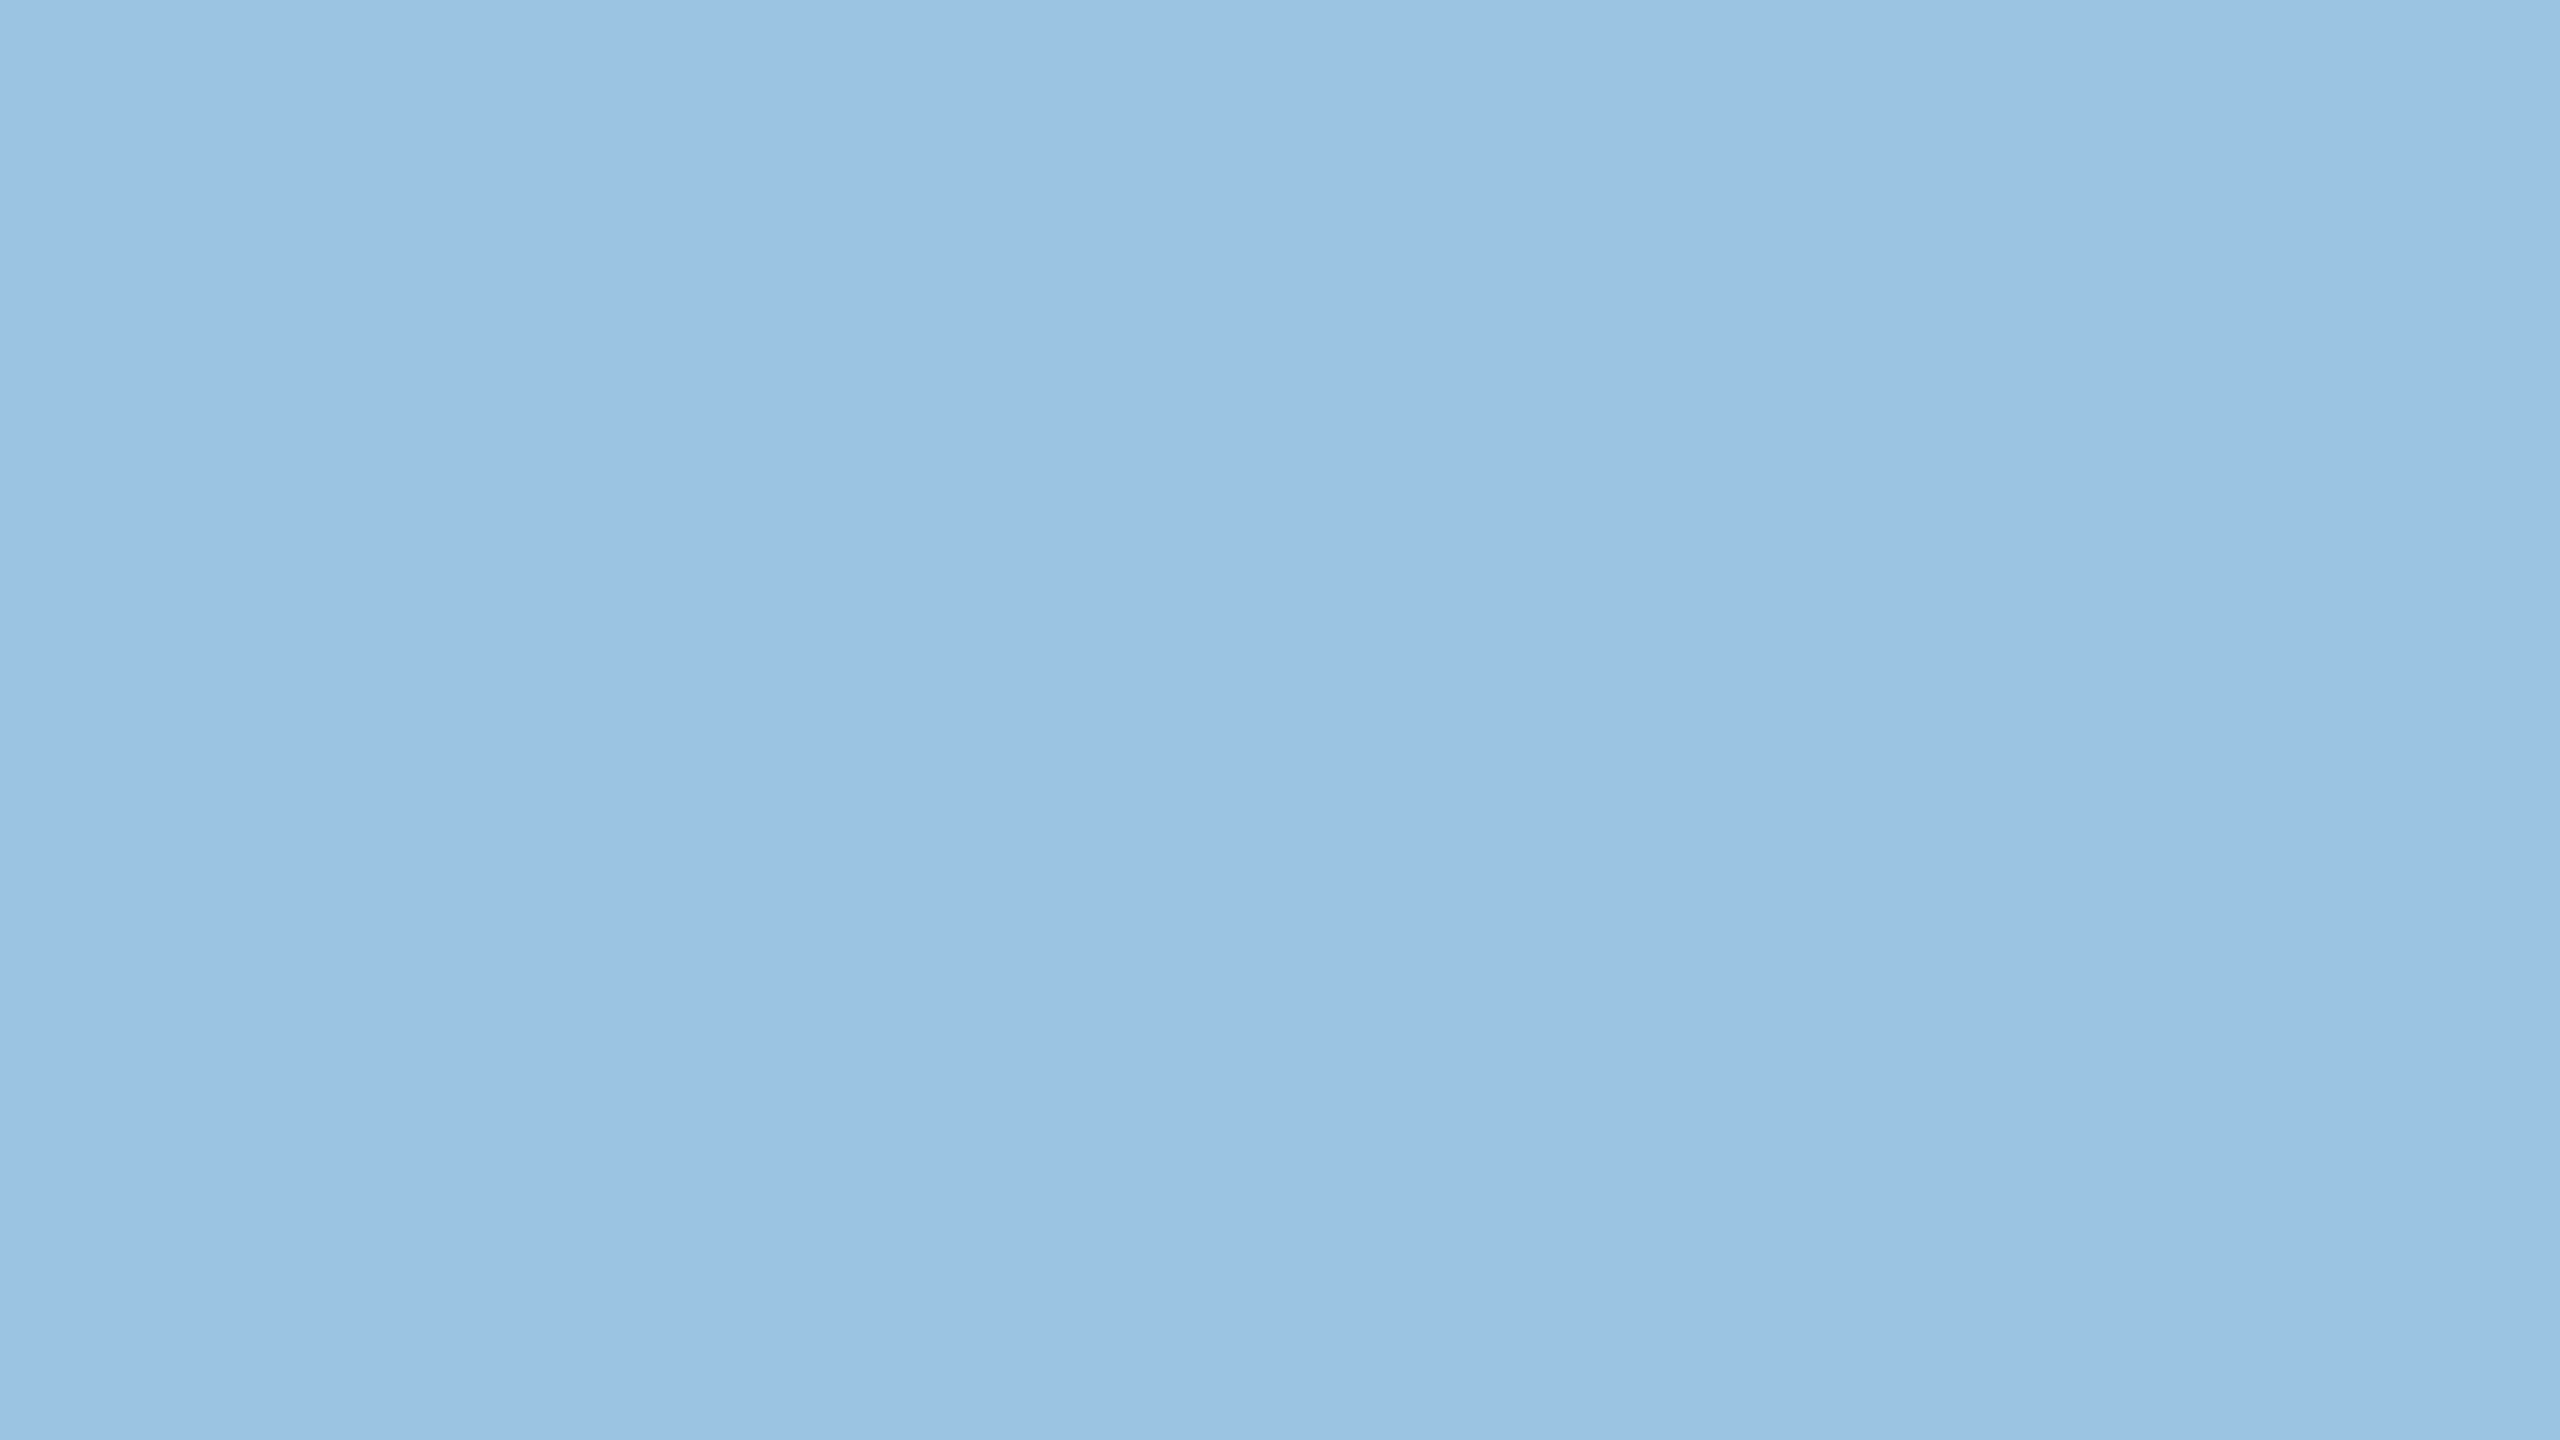 2560x1440 Pale Cerulean Solid Color Background